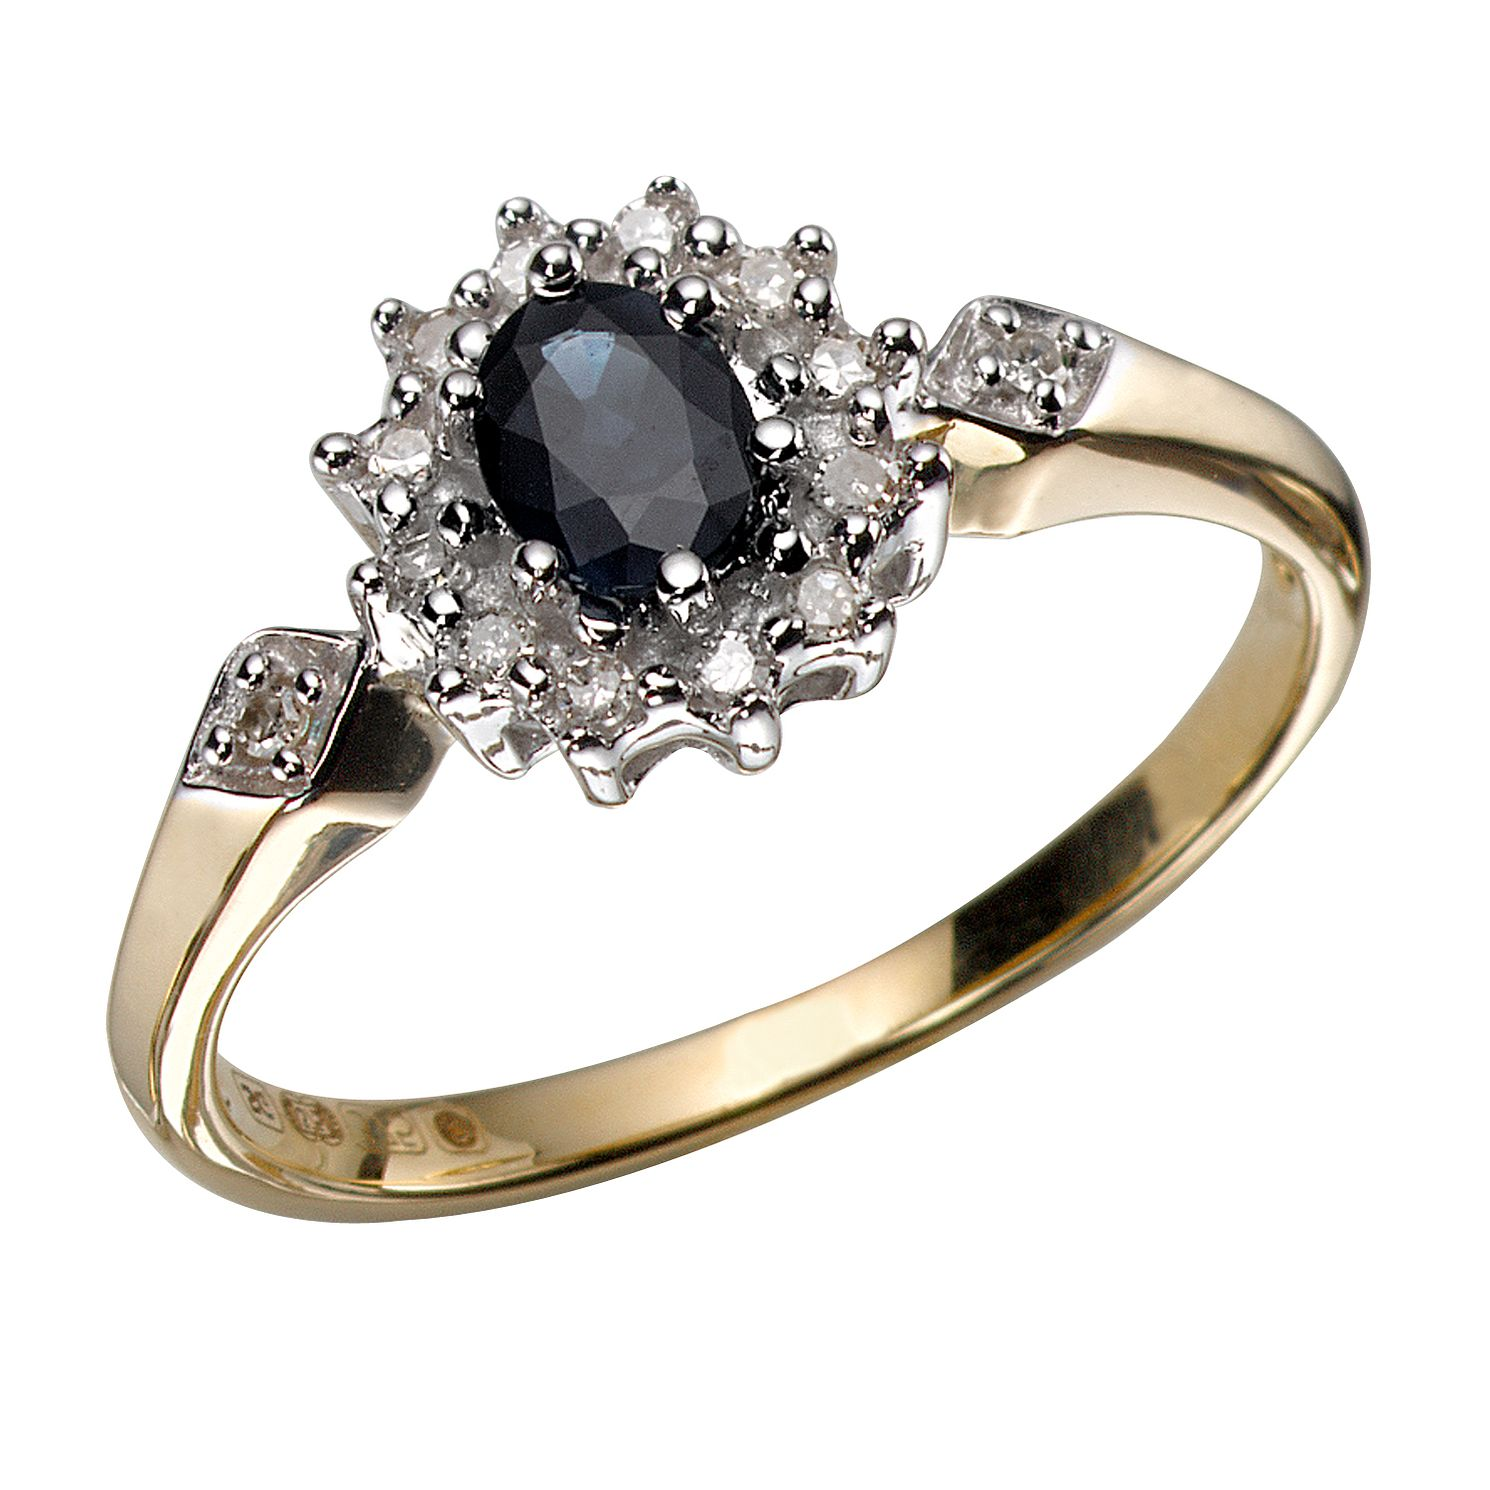 crown with setting custom black a dark sterling by rings made blue labradorite silver ring galery crazyassjewelry buy engagement